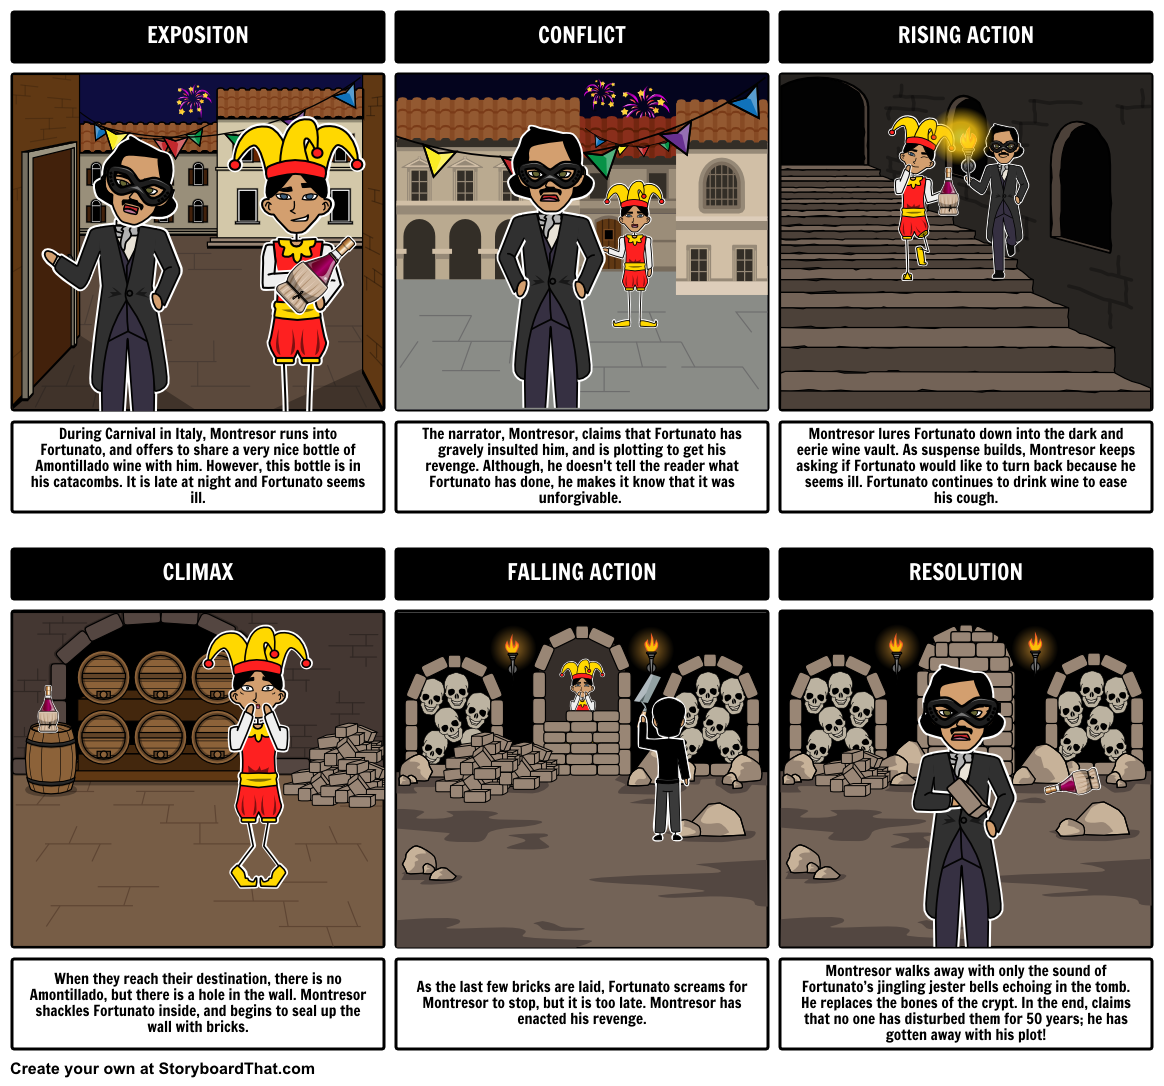 the cask of amontillado summary create a storyboard depicting a the cask of amontillado summary create a storyboard depicting a the cask of amontillado